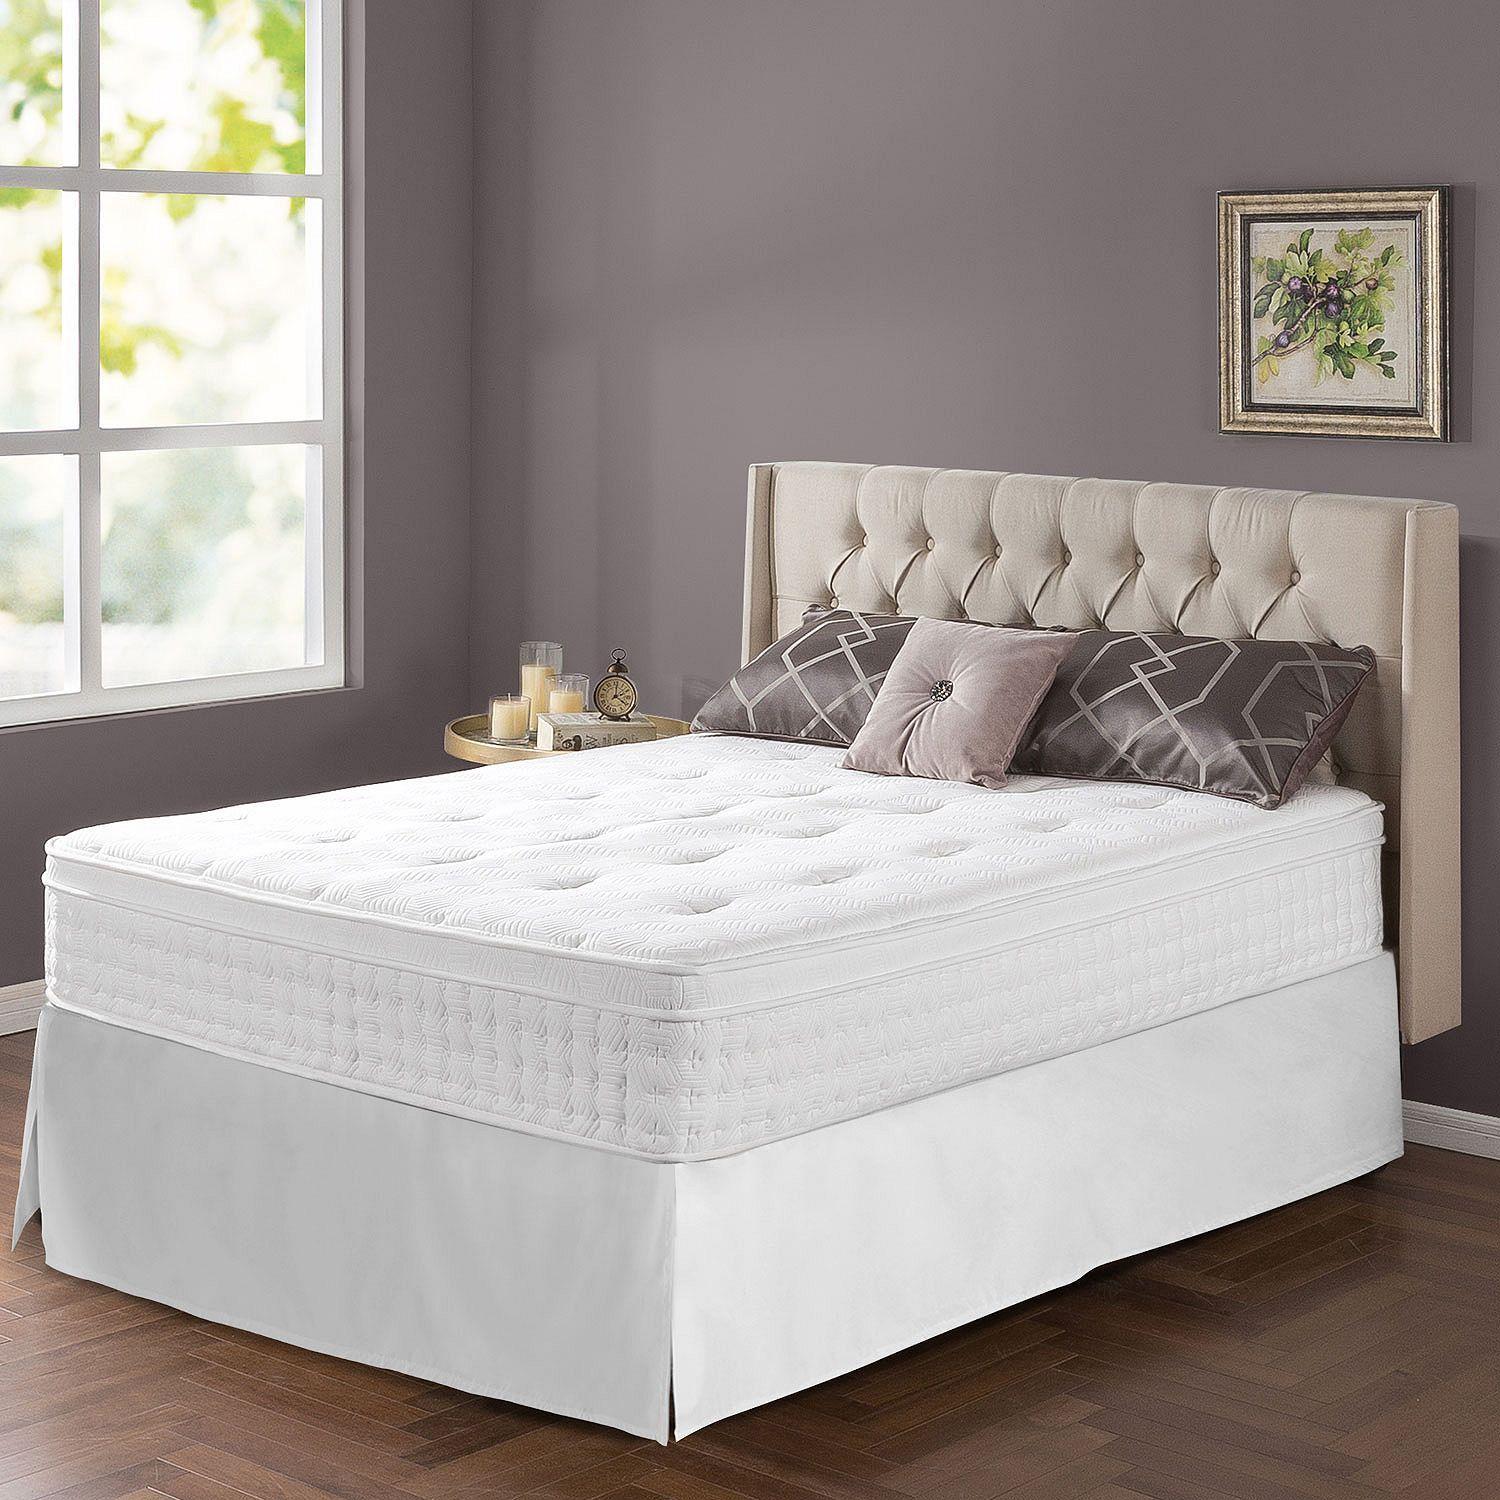 "Zinus Night Therapy iCoil 12"" Euro Boxtop Spring Mattress"